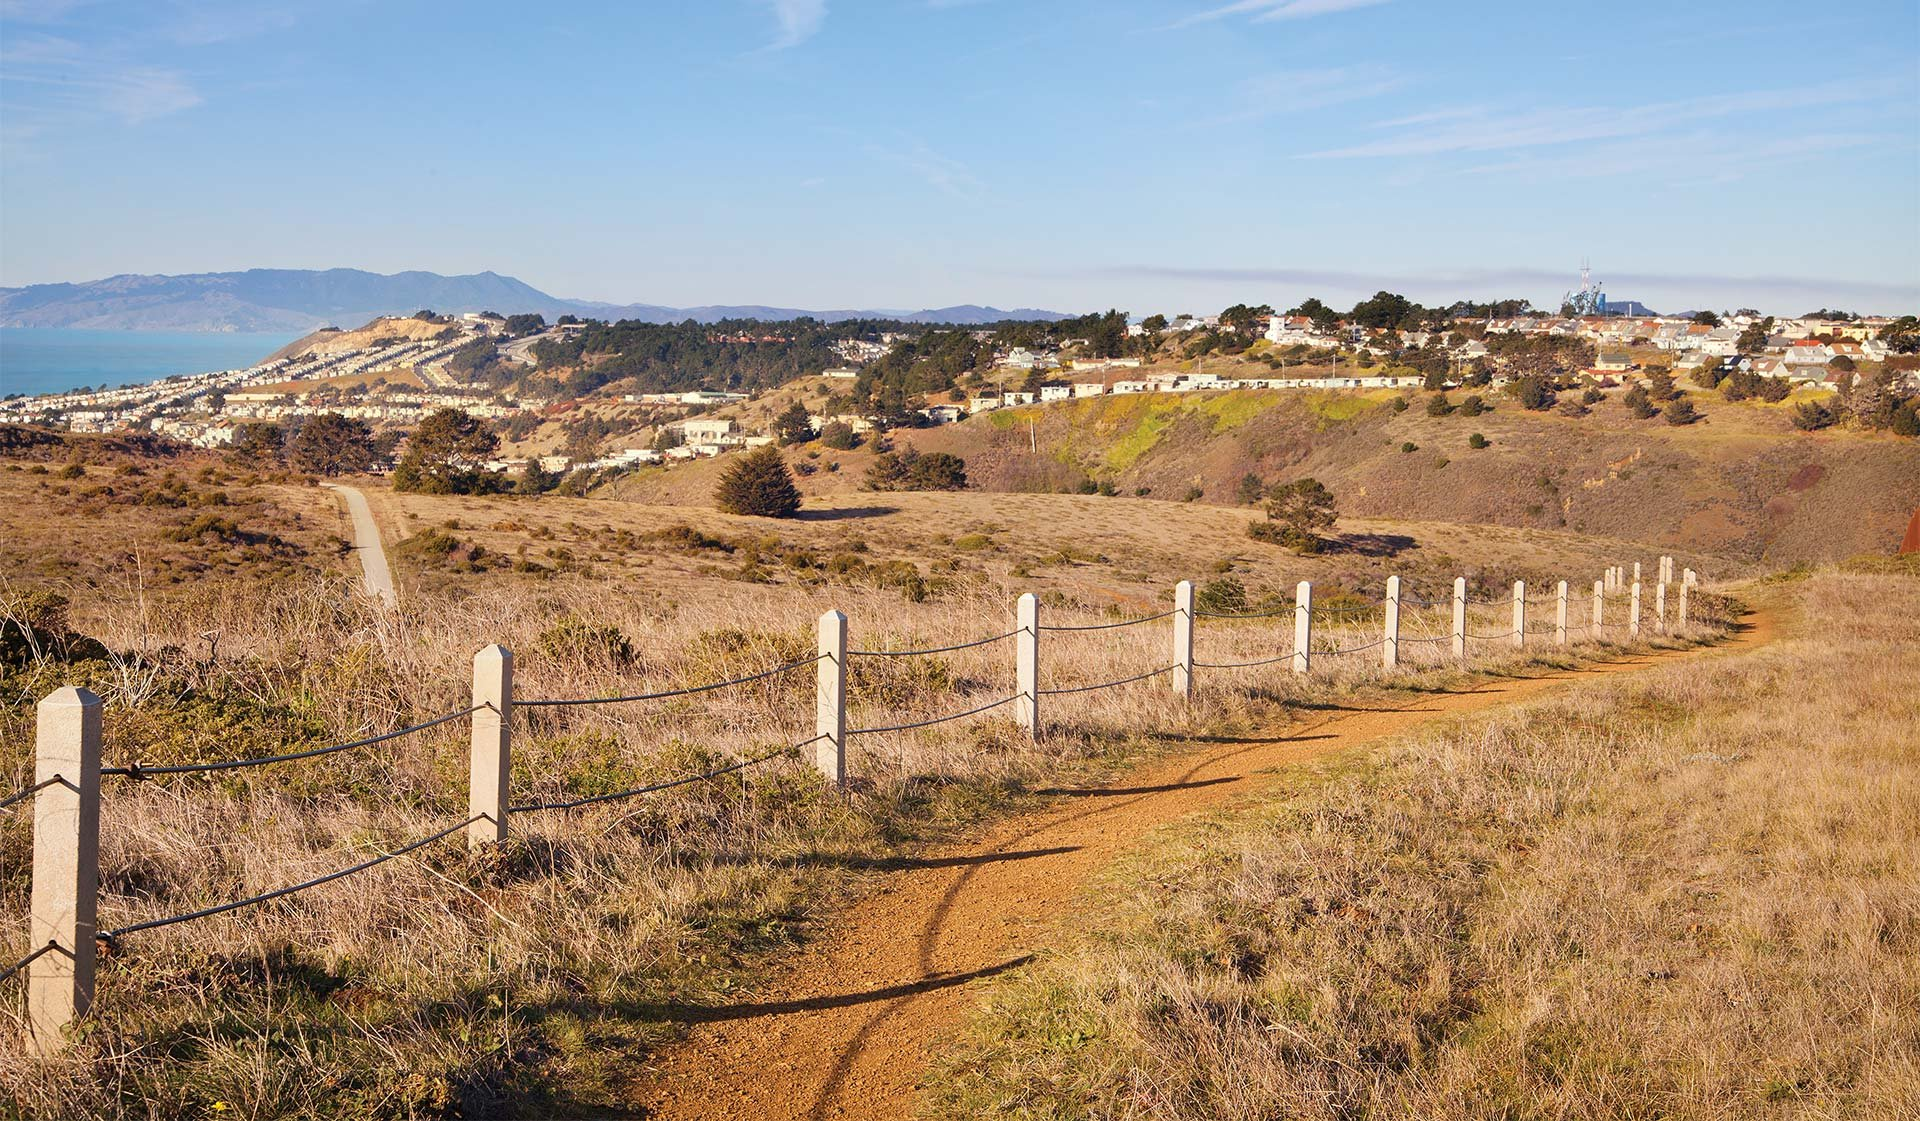 Pacific Bay Vistas - San Bruno, CA - Hiking Parks